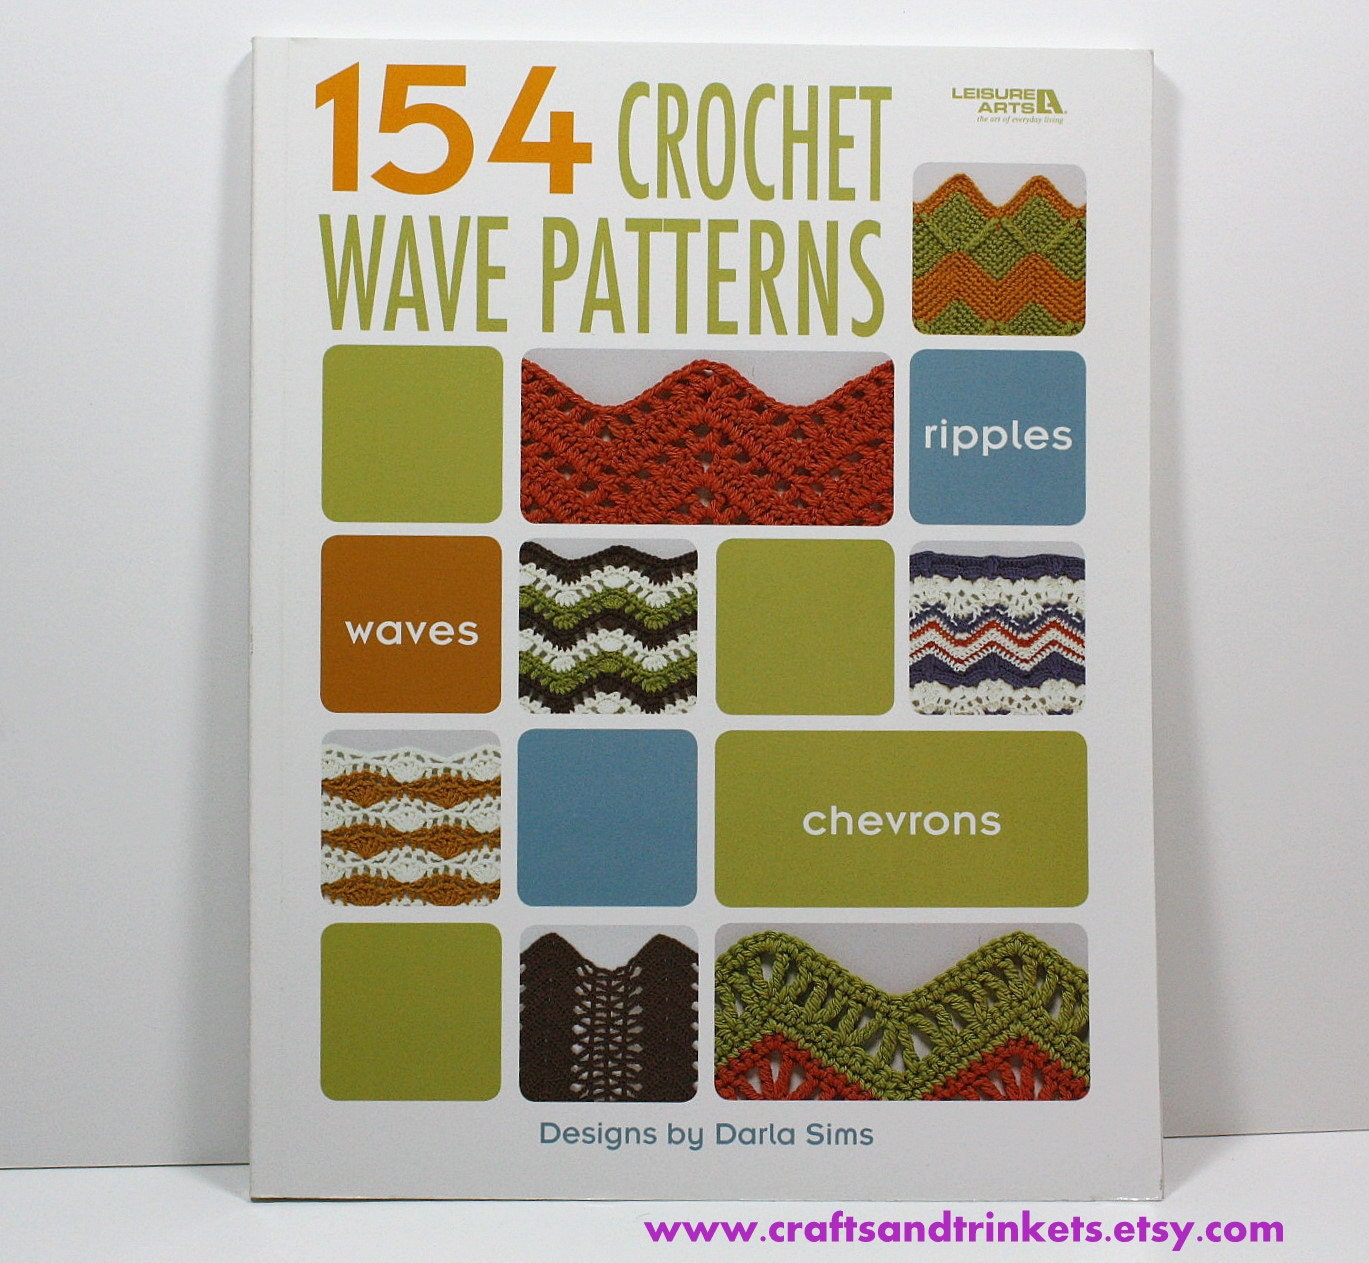 How to crochet a ripple stitch lap blanket? - Yahoo! Answers